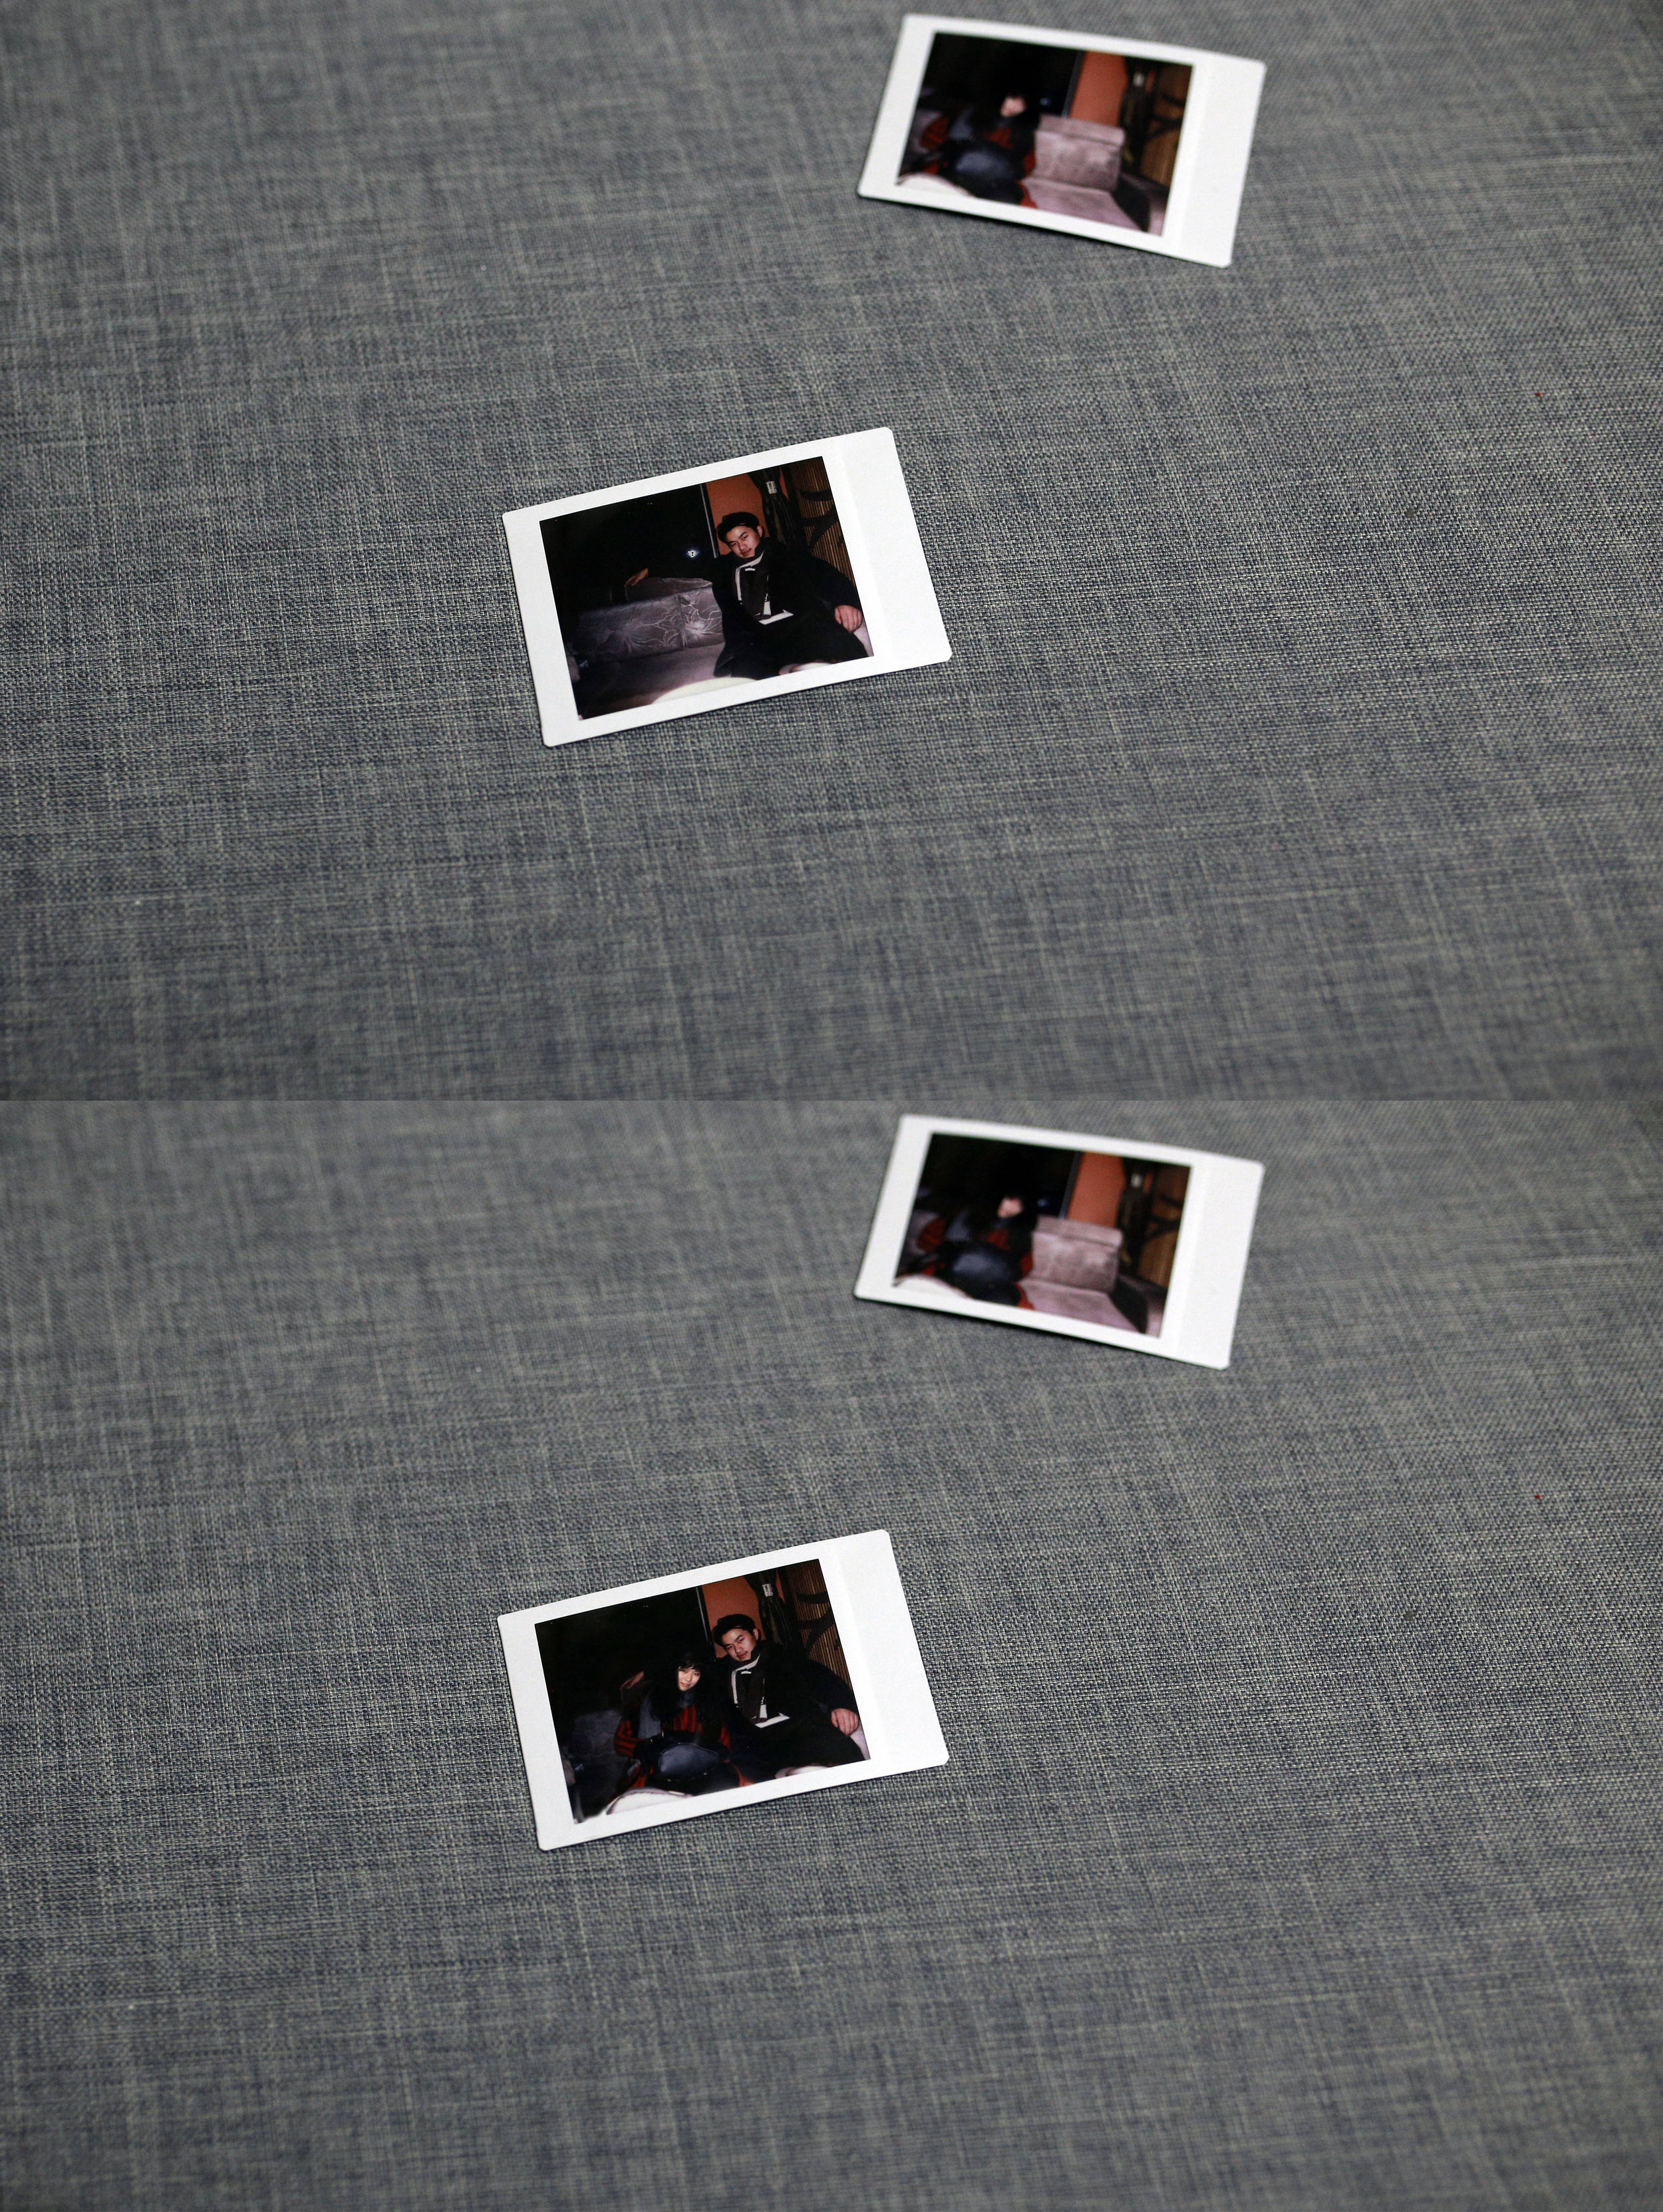 """Me and """"her"""" taken and faked by Polaroid 用拍立得伪造合影"""